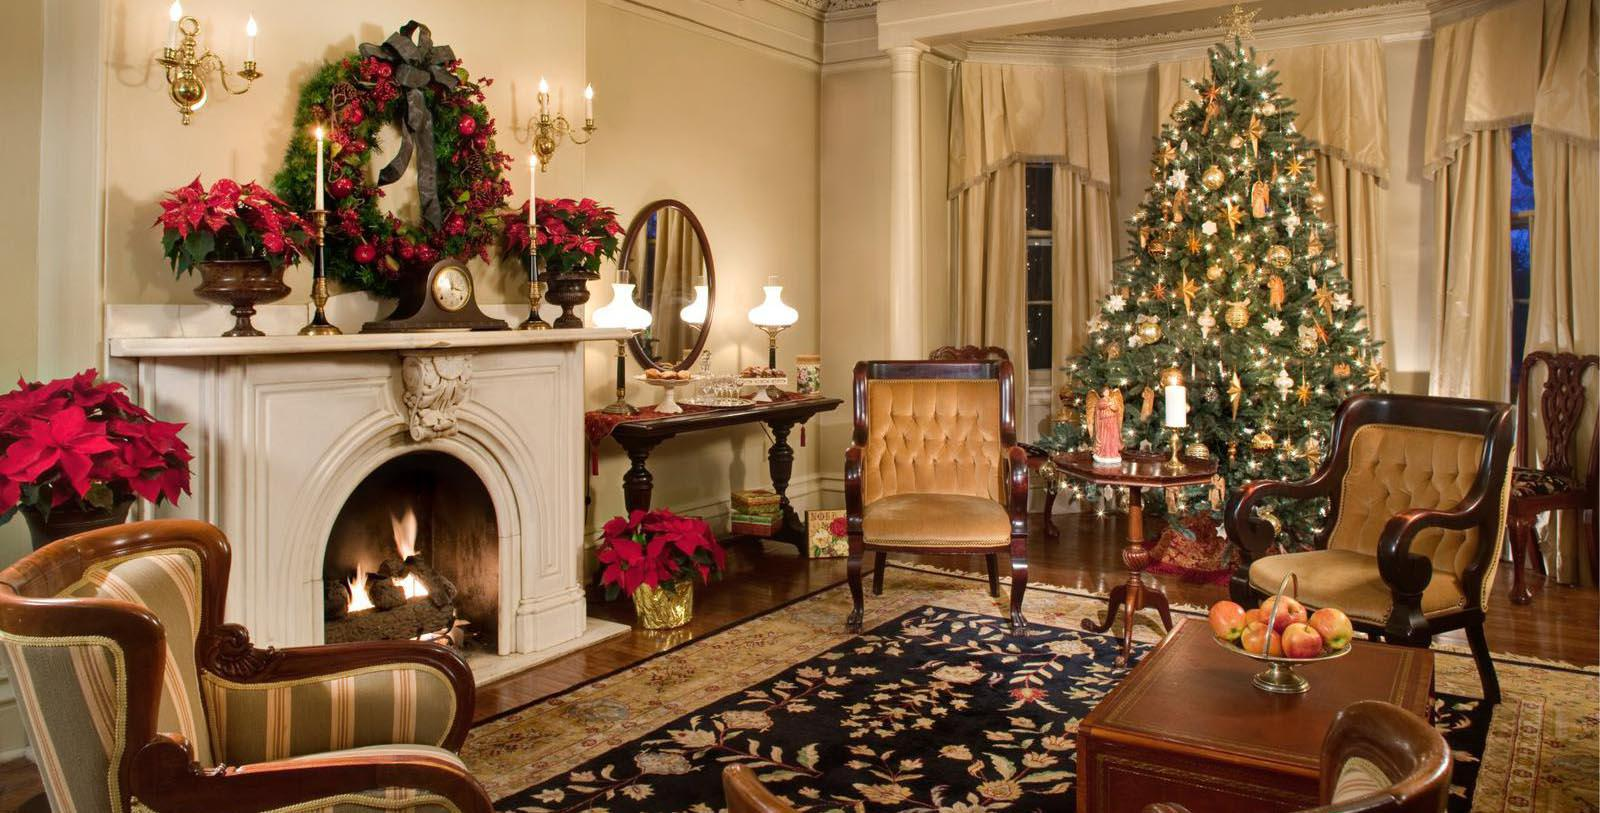 Image of Parlor at Christmas at The Sayre Mansion, 1858, Member of Historic Hotels of America, in Bethlehem, Pennsylvania, Special Occasions